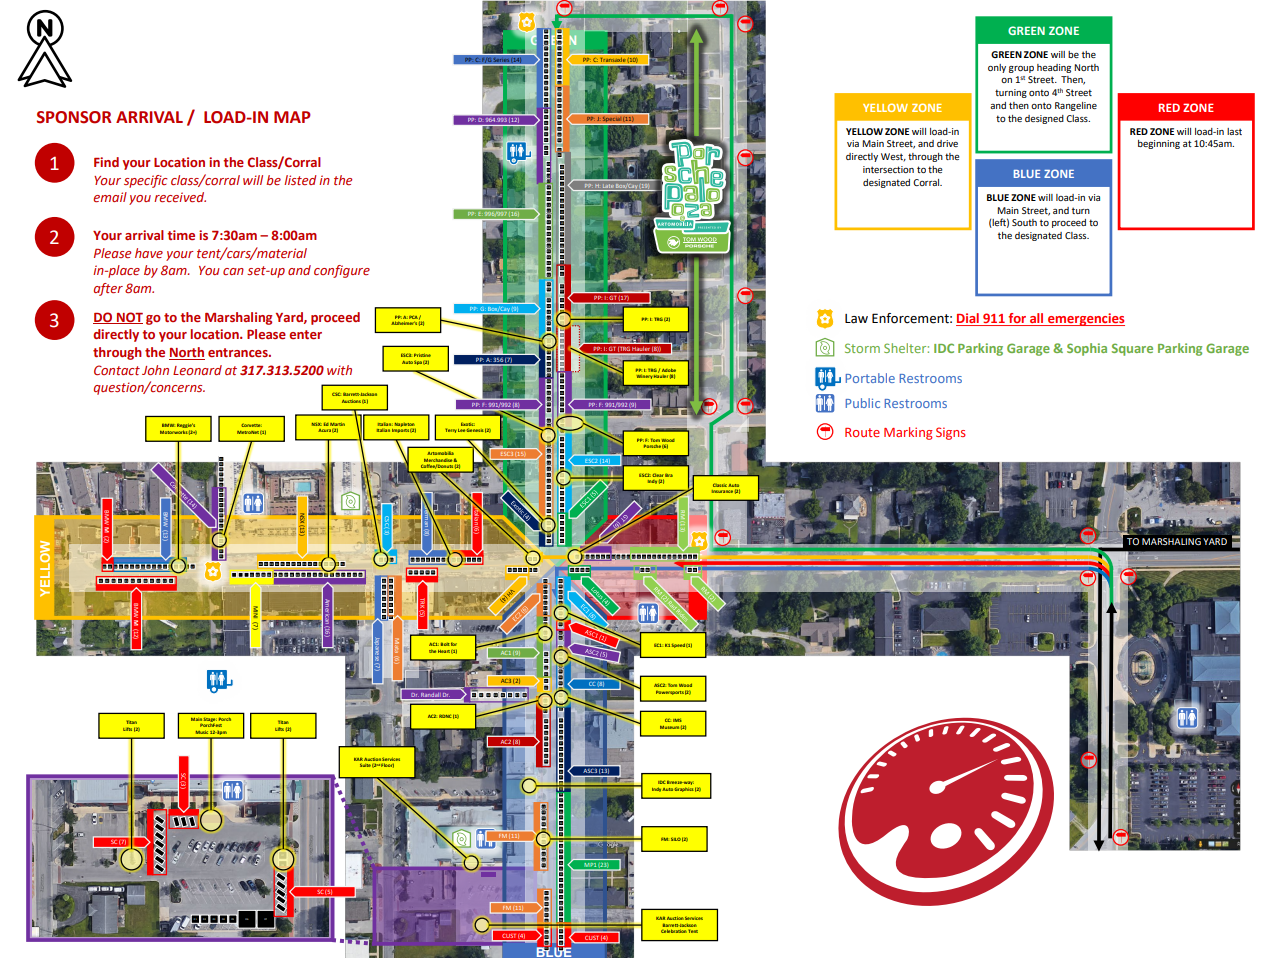 CLICK ON THE MAP TO VIEW OR DOWNLOAD HIGH-RES SPONSOR MAP